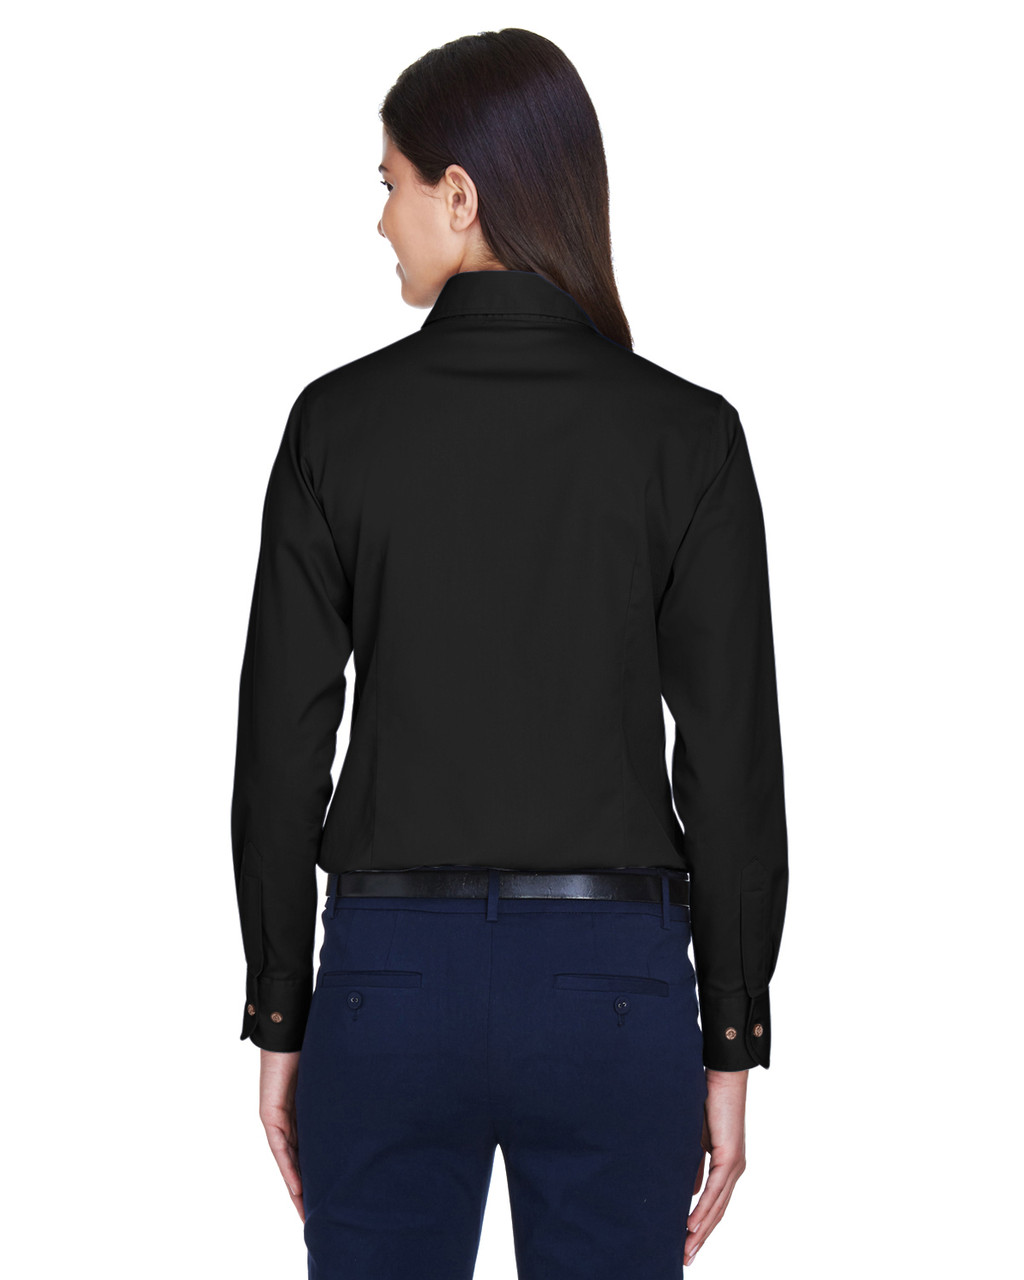 Black - Back, M500W Harriton Easy Blend Long-Sleeve Twill Shirt with Stain-Release | BlankClothing.ca